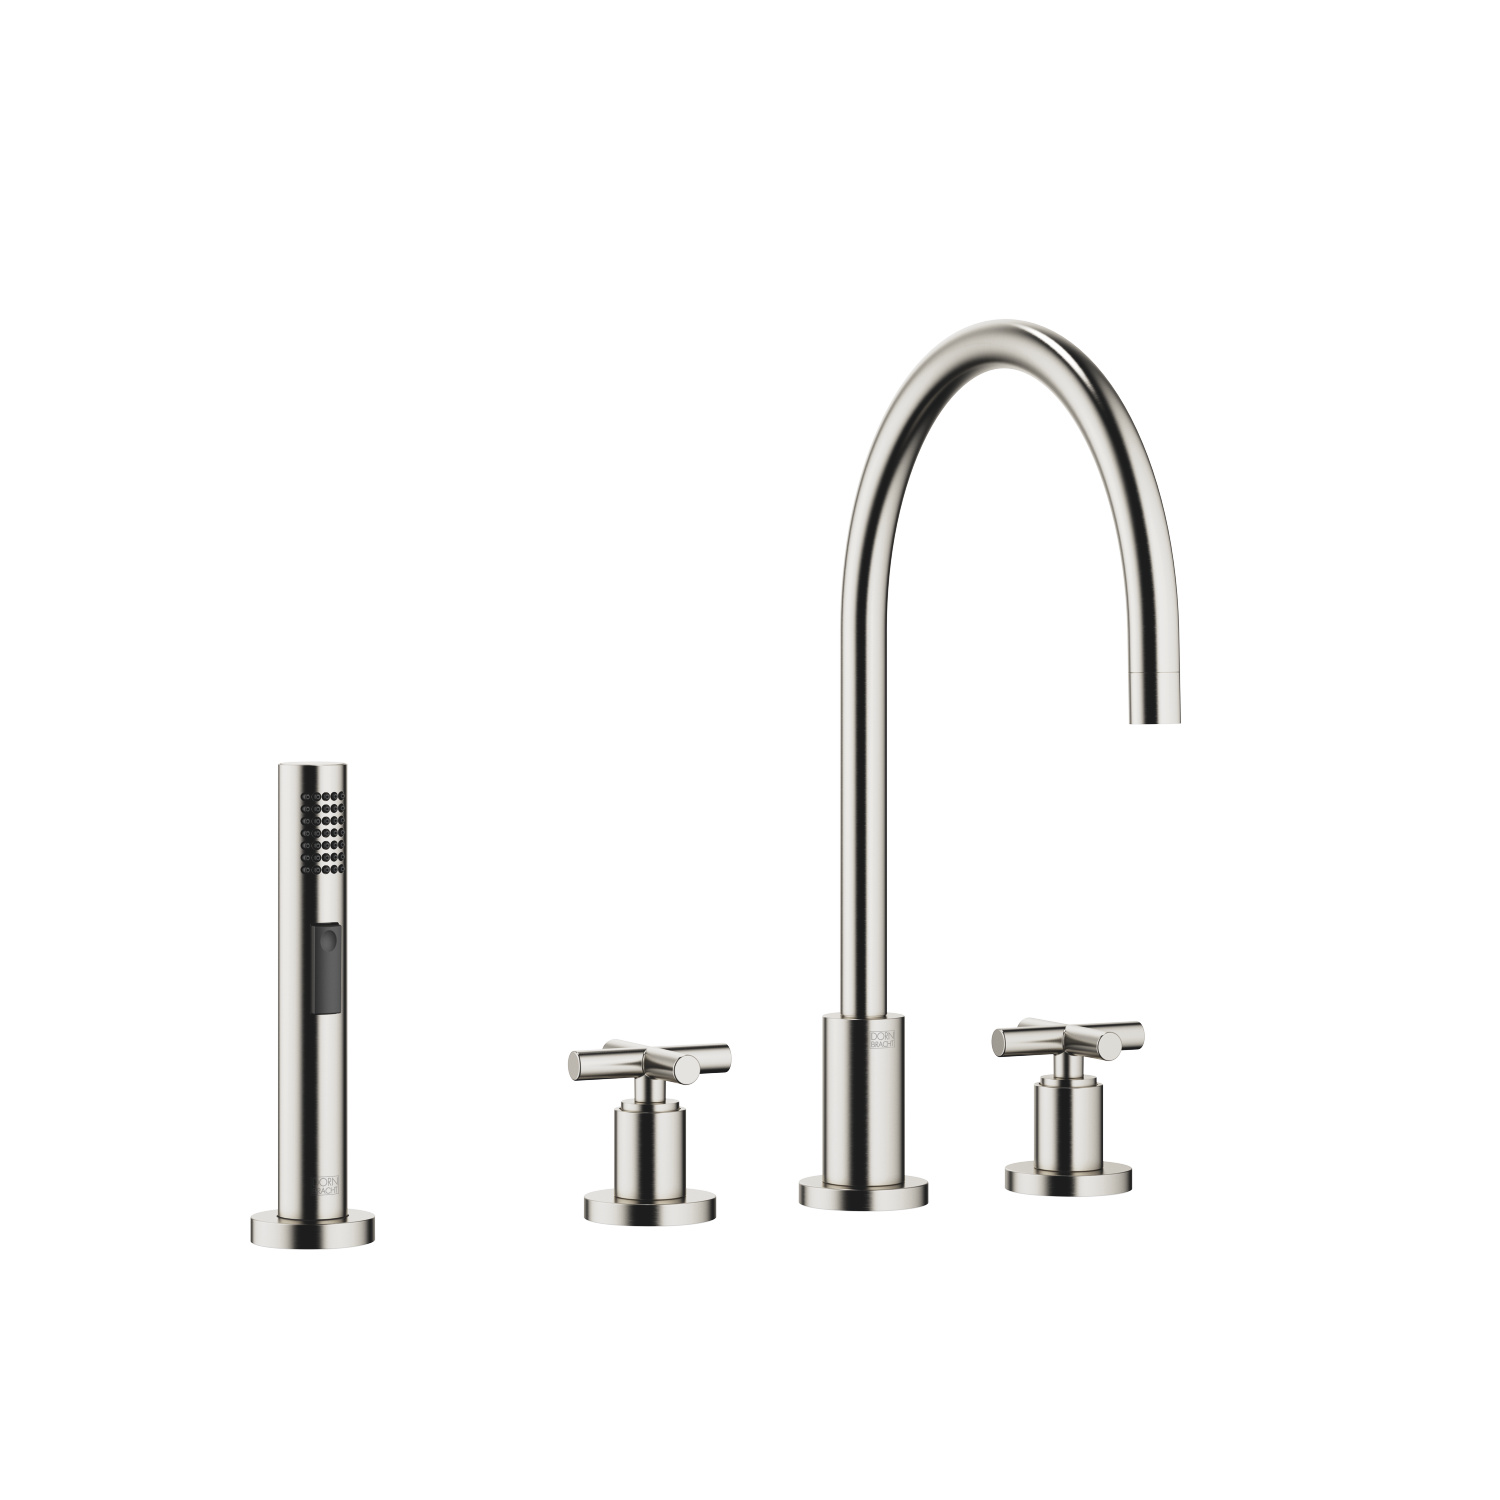 Three-hole mixer with rinsing spray set - platinum matt